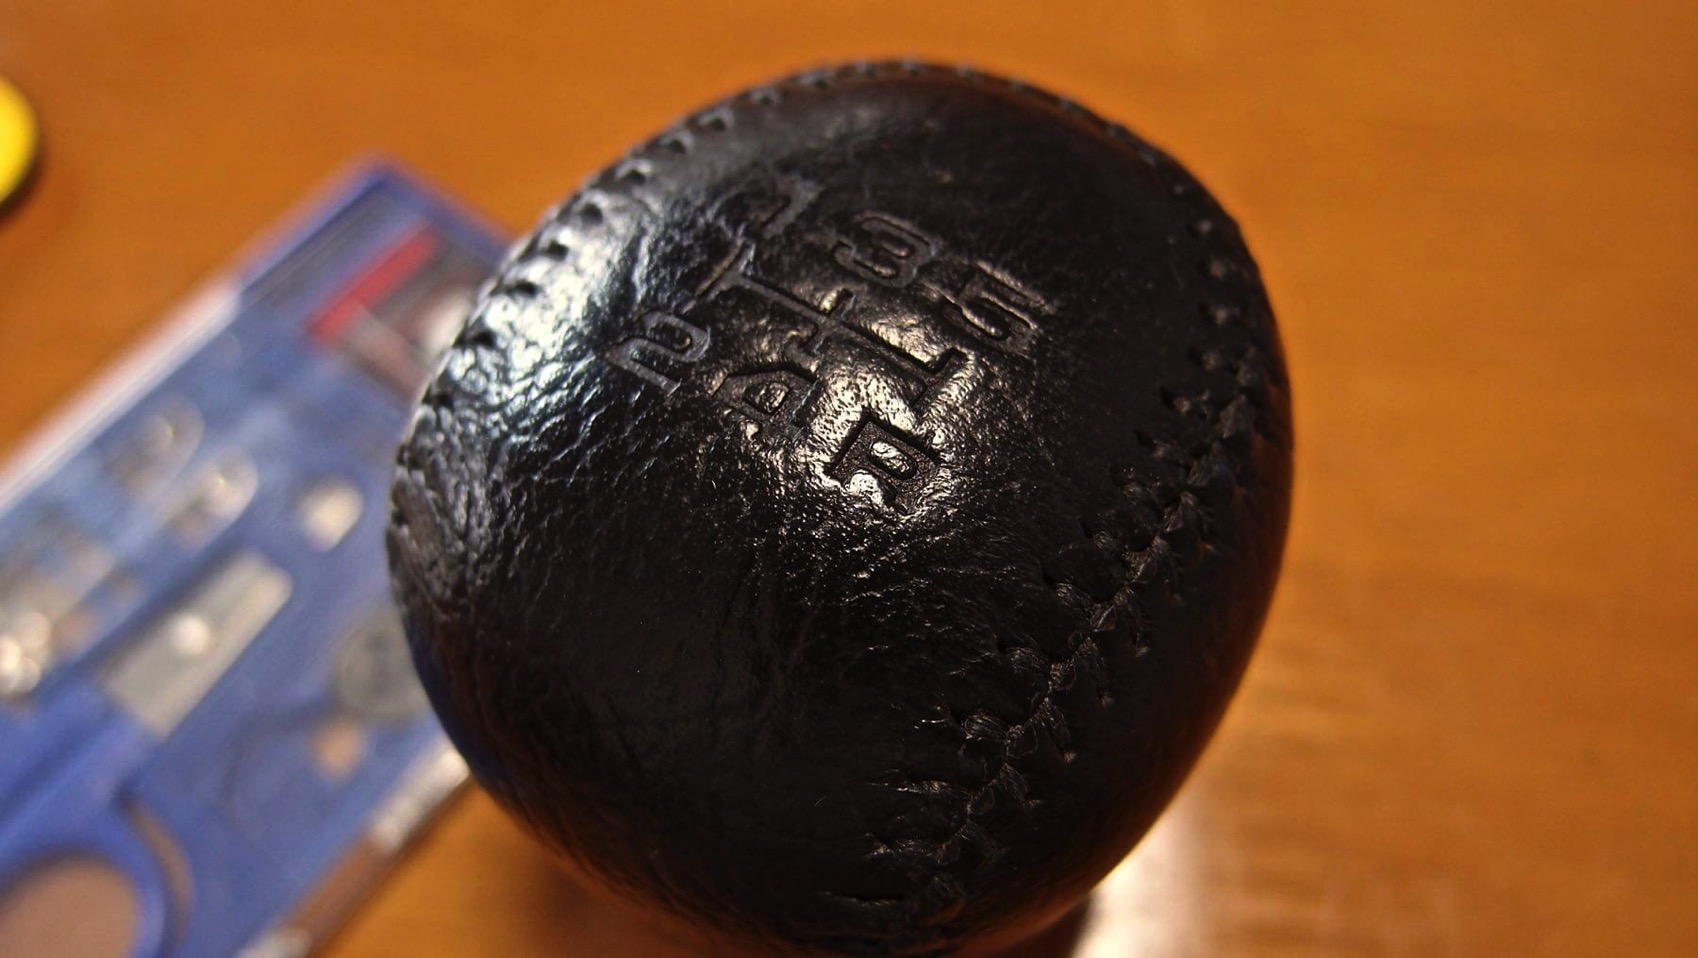 09 MR2 genuine shift knob